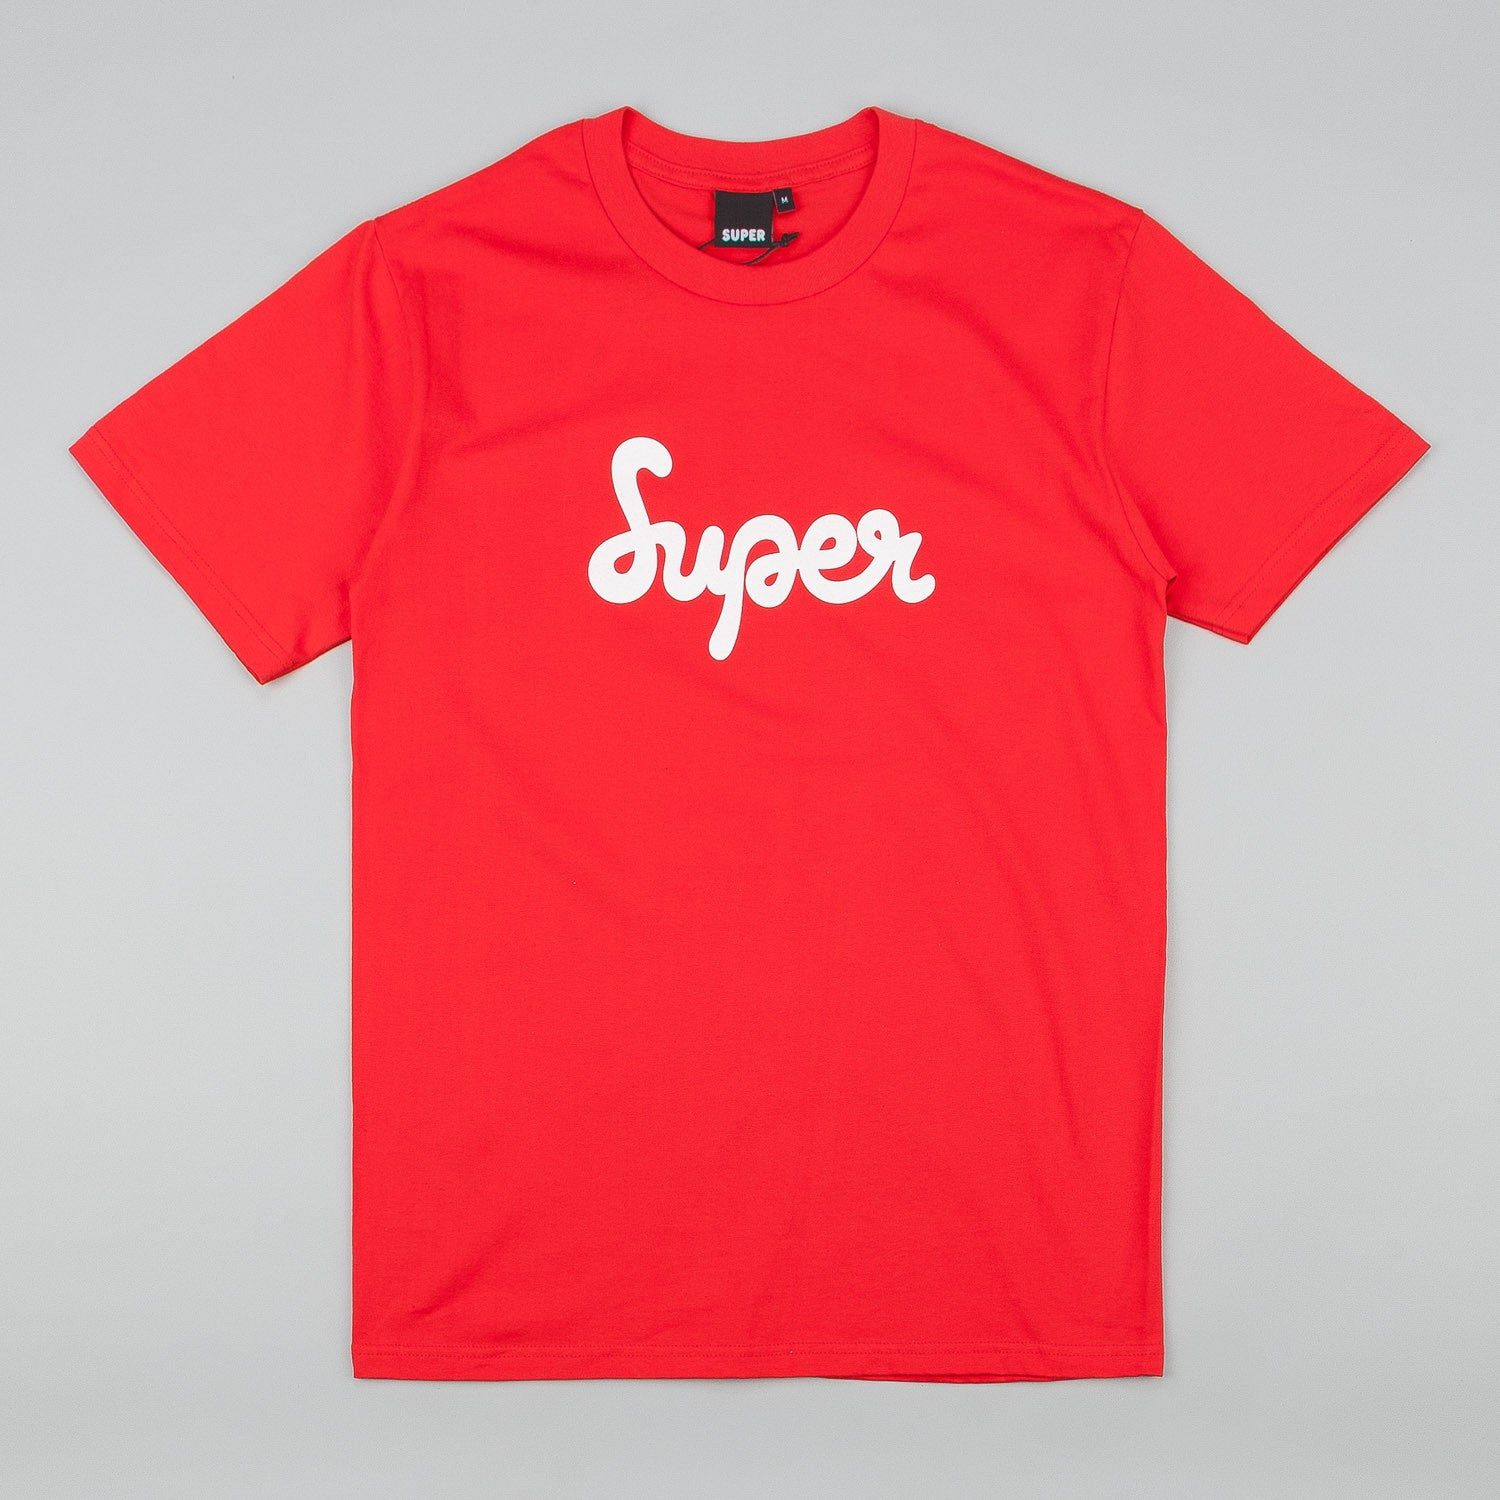 Colorsuper Signature MKIII T-Shirt - Red / White